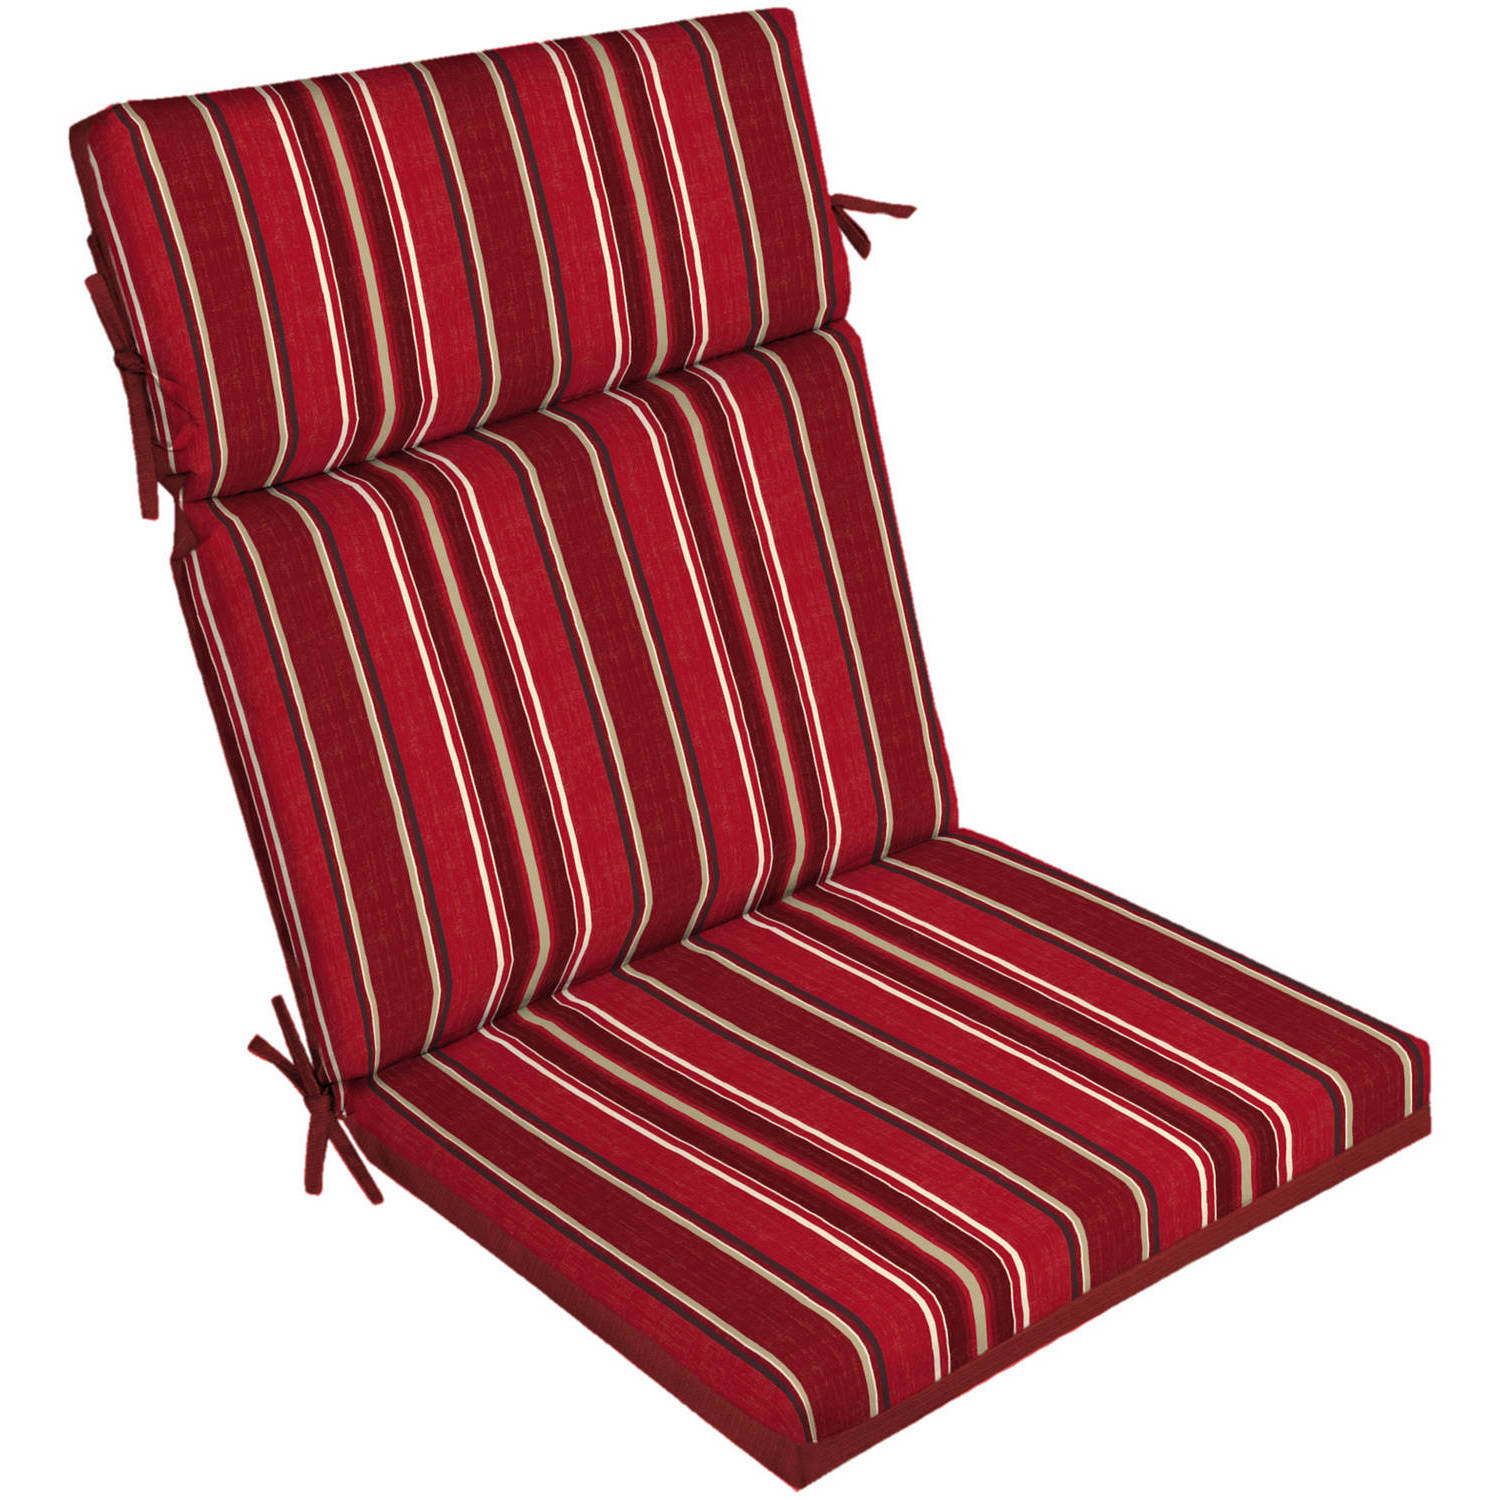 Better Homes and Gardens Outdoor Patio Reversible Dining Chair Cushion